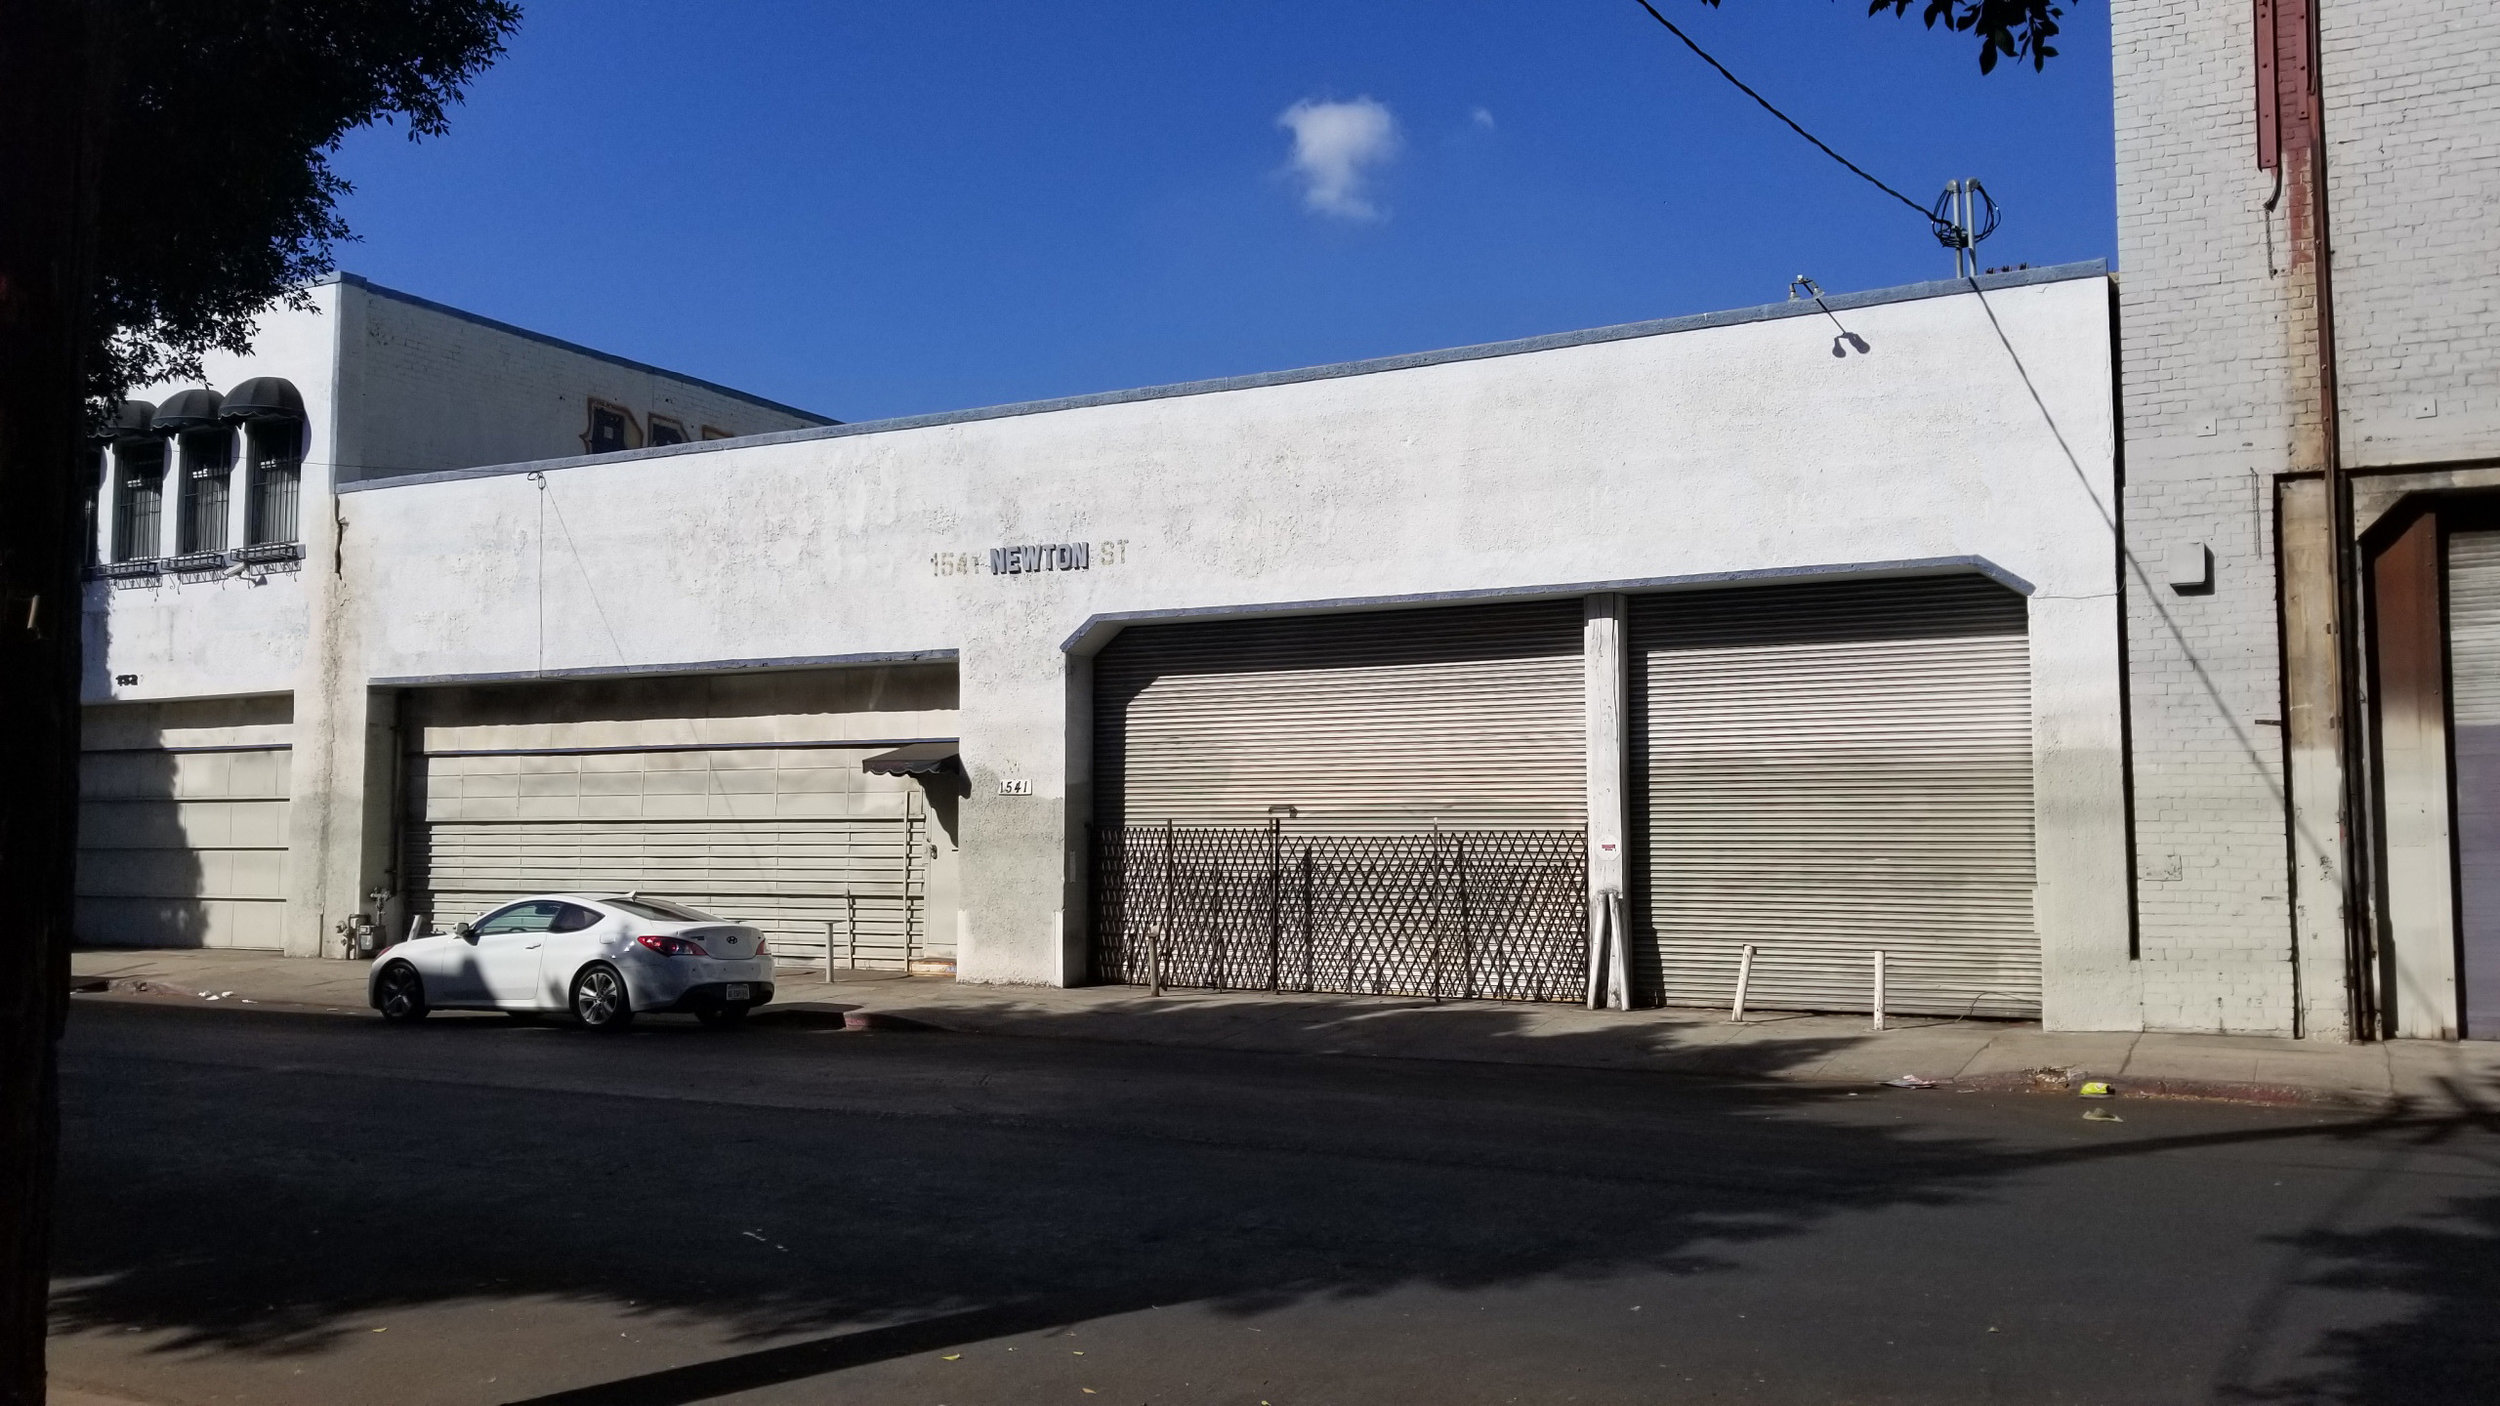 1541 Newton street, los angeles, ca 90021 - - Lease Rate: $ 0.90/SF- Type: Warehouse- Leasable Space: 10,000 SF (Office: 960 SF)